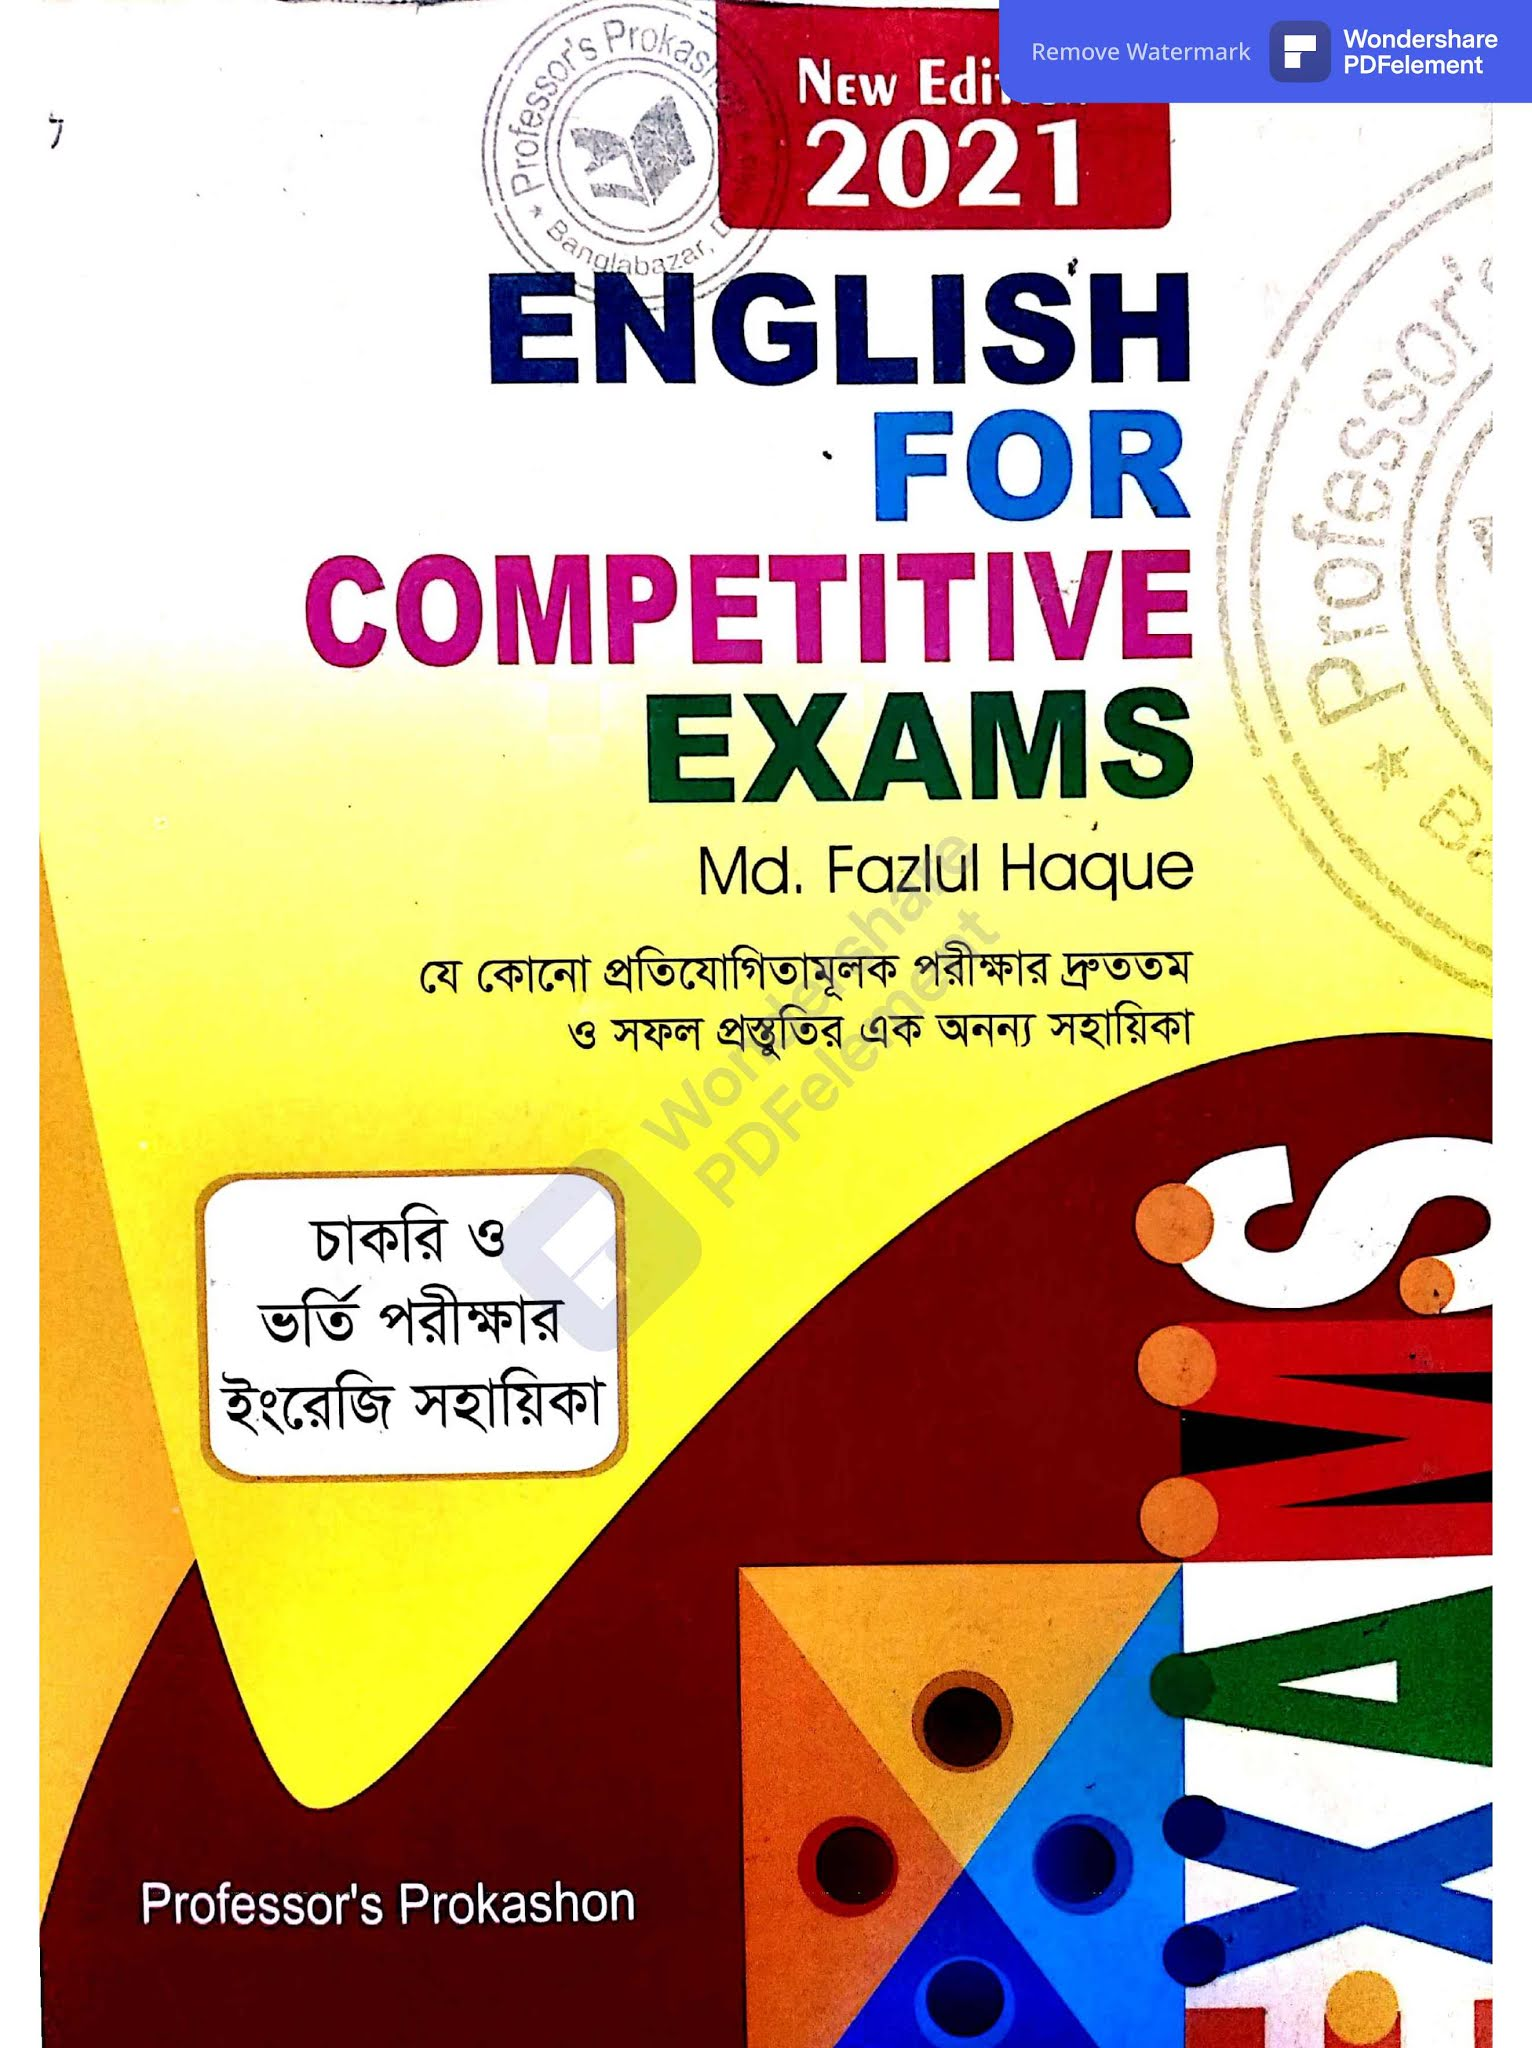 English for Competitive Exam 2021 [ New Edition ] PDF |English for Competitive Exam full Book PDF free download |English for Competitive Exam PDF